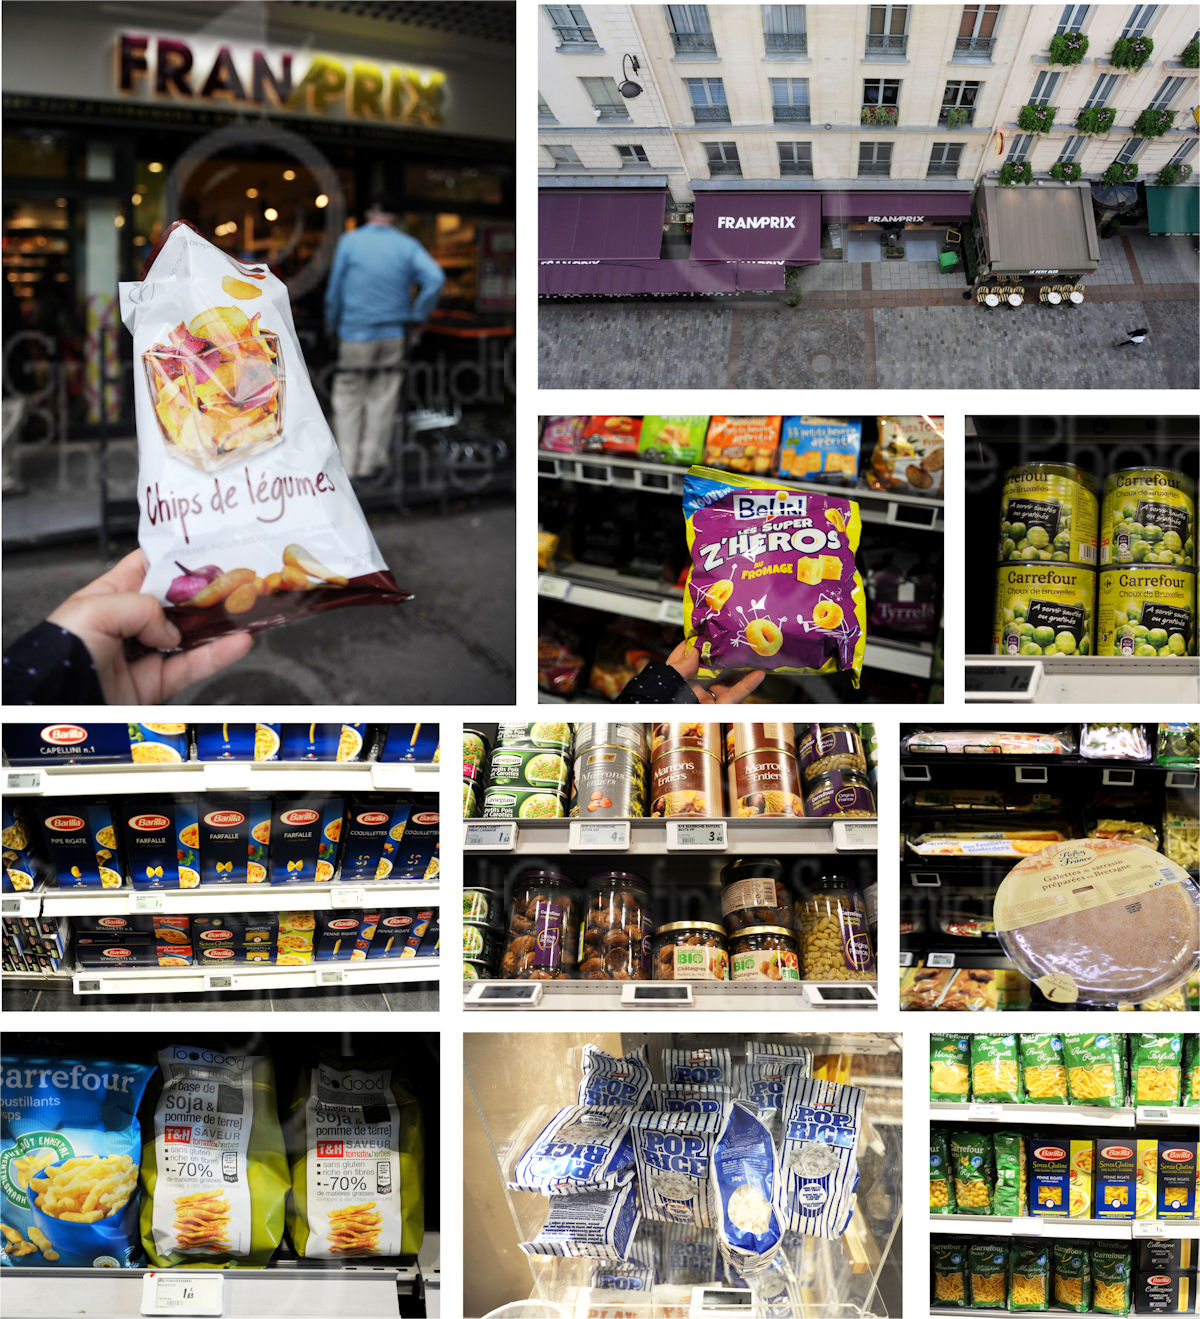 Parisian Supermarkets under the Microscope: Naturalia, Picard and FranPrix